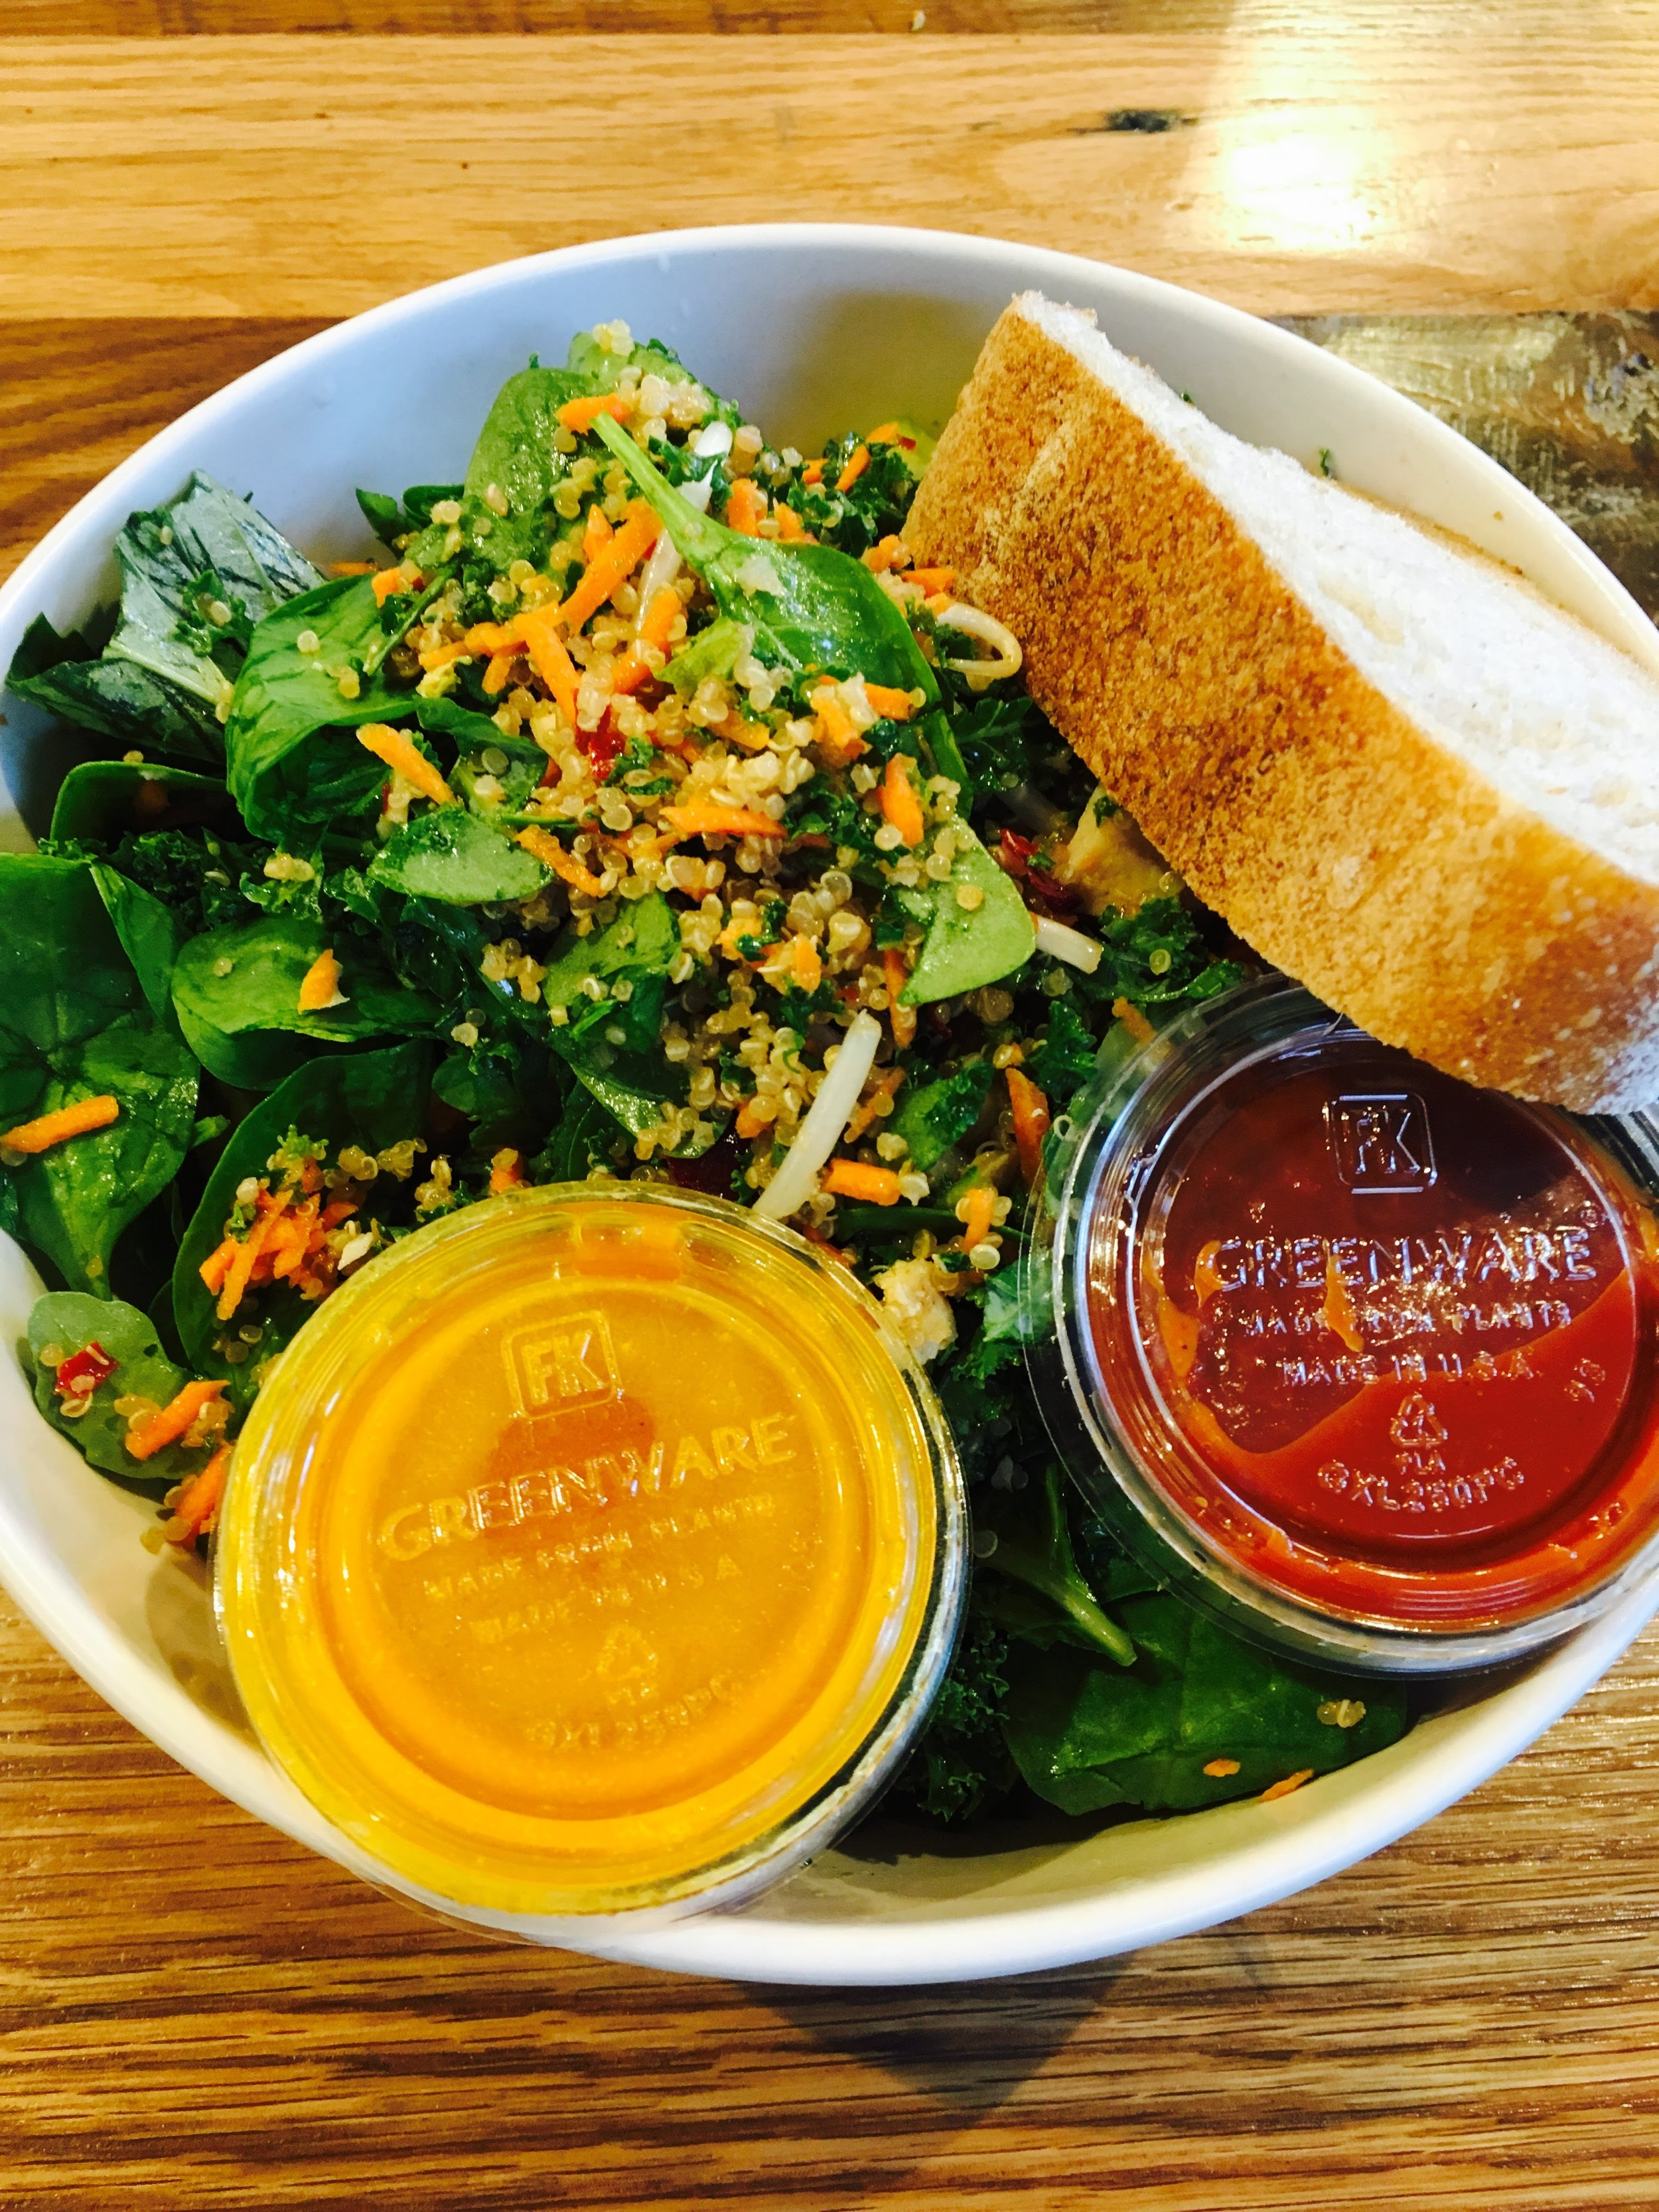 Delicious Salad at Sweetgreen.JPG